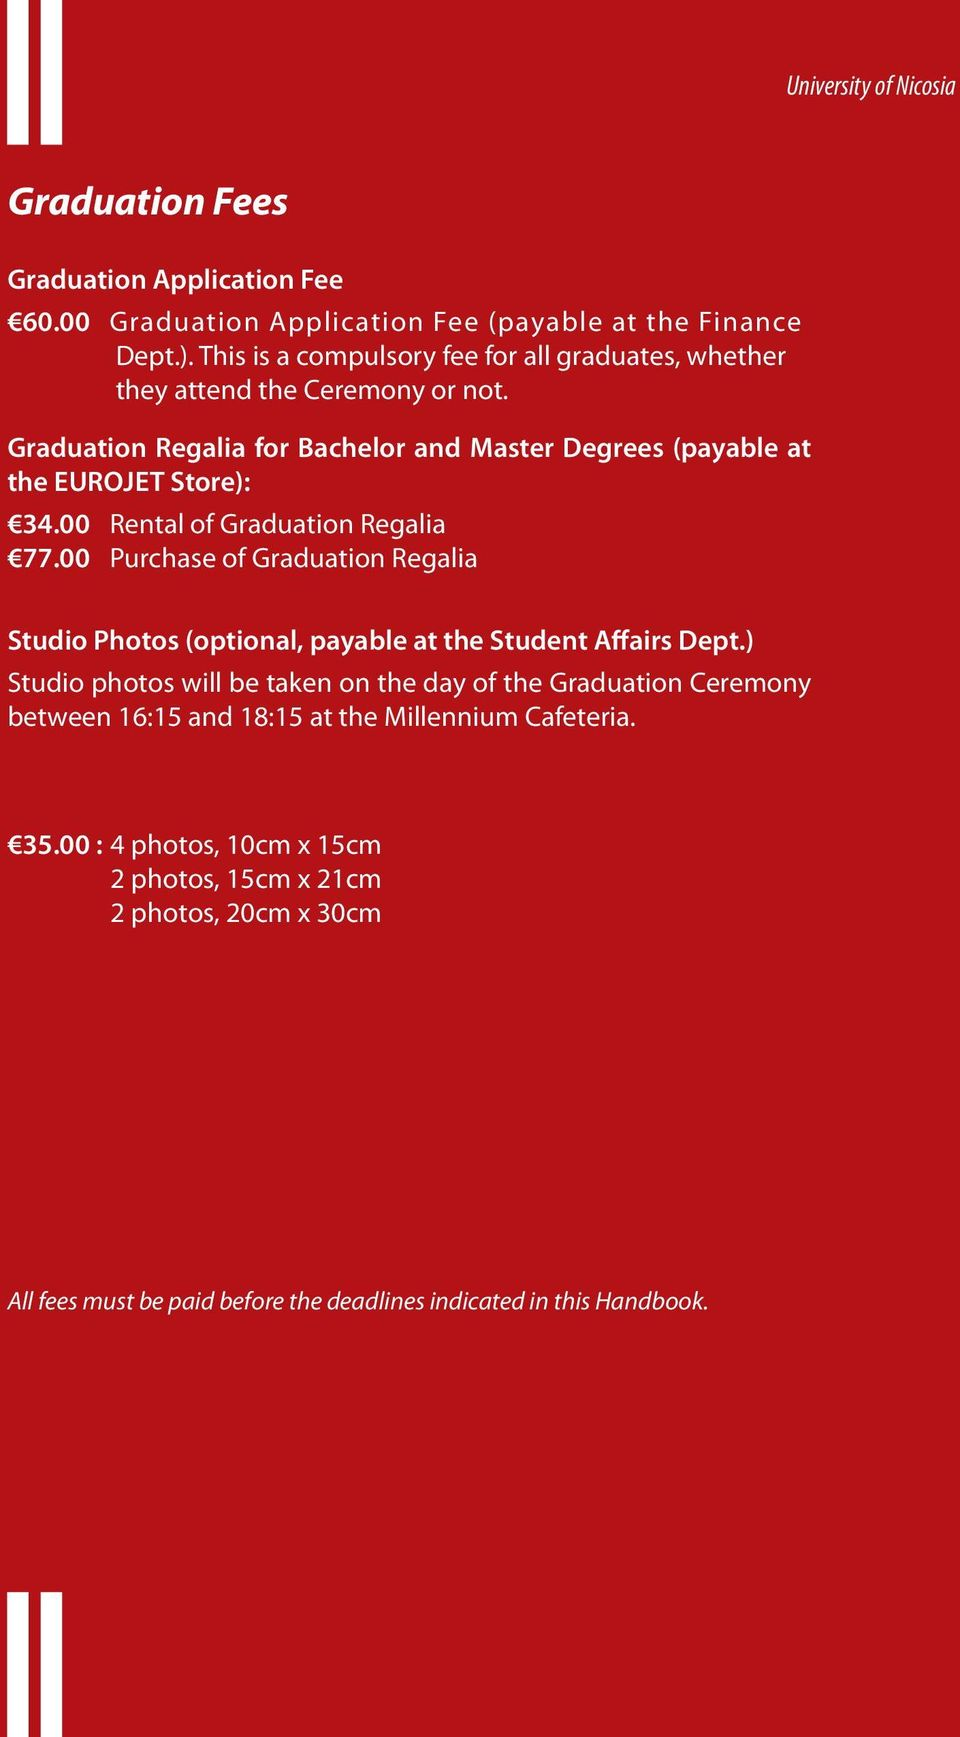 00 Rental of Graduation Regalia 77.00 Purchase of Graduation Regalia Studio Photos (optional, payable at the Student Affairs Dept.